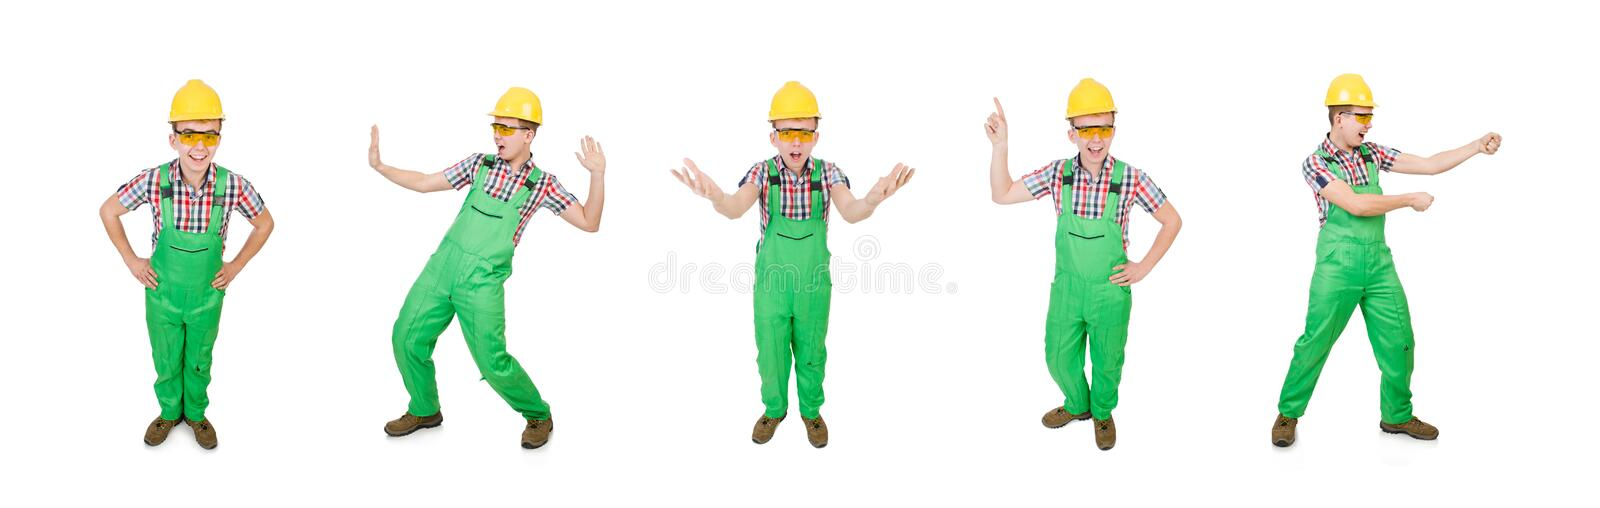 Industrial worker isolated on the white background stock images